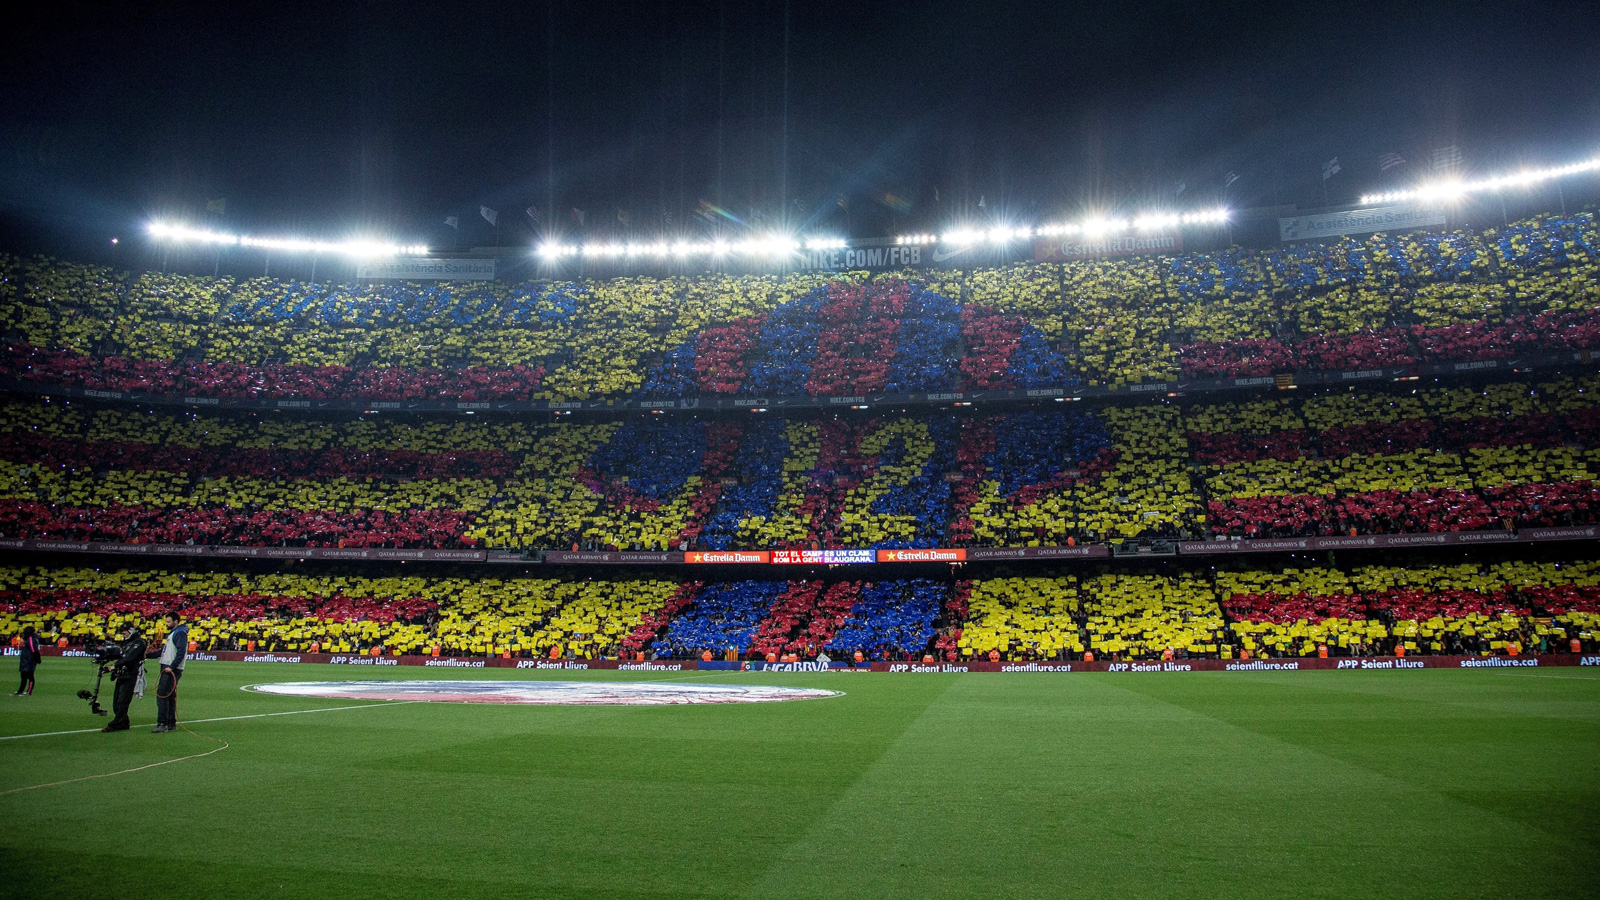 Barcelona fans show all who the real 12th man is ahead of the March 2015 Clásico vs. Real Madrid.